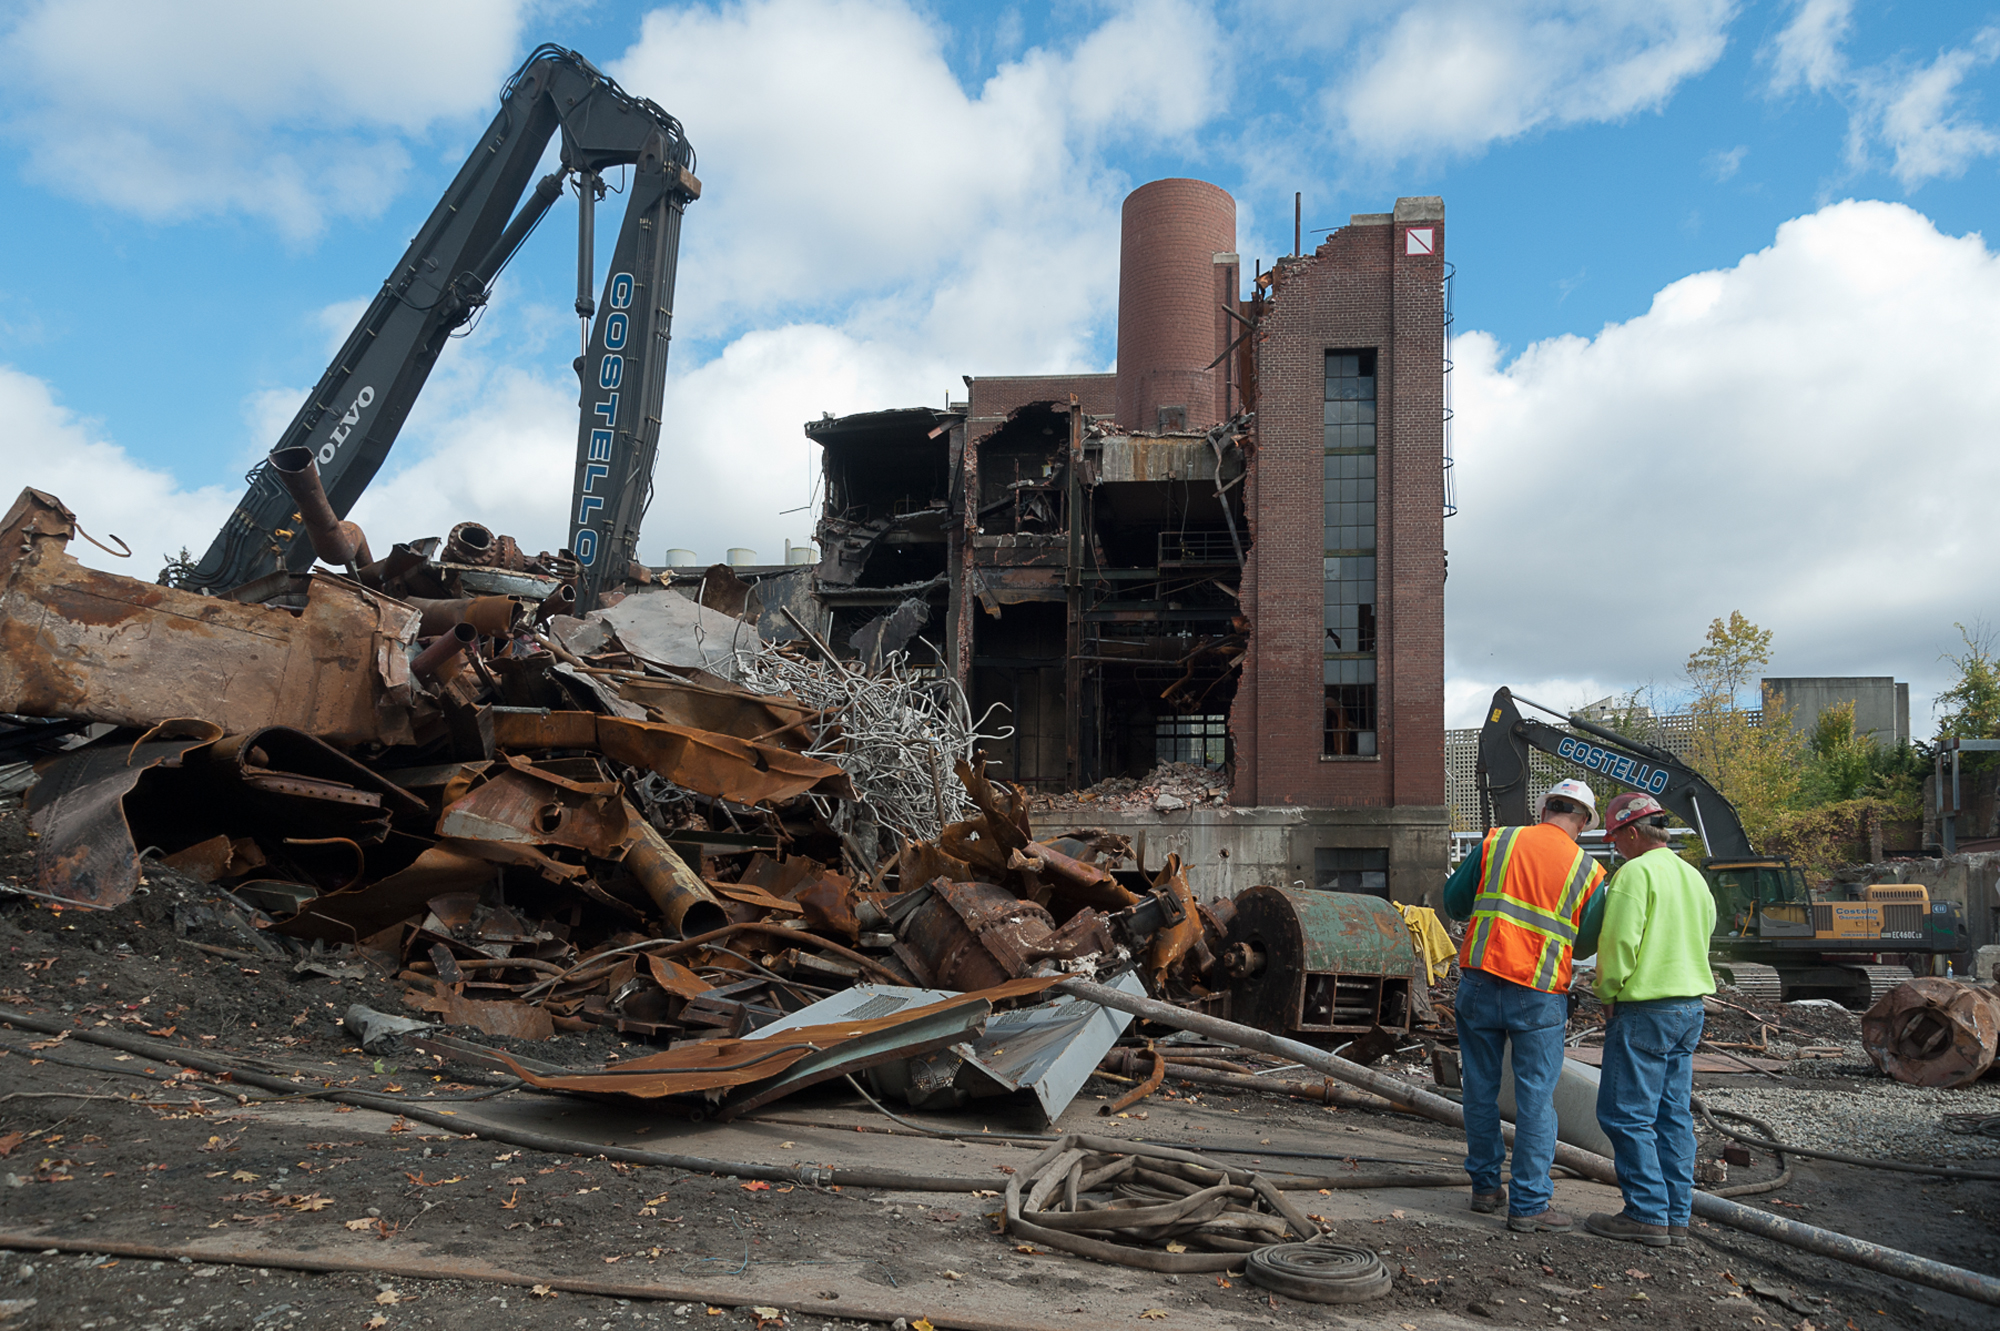 demolition Progress photography by John Giammatteo of the UMass plant demolition by Whiting Turner Construction